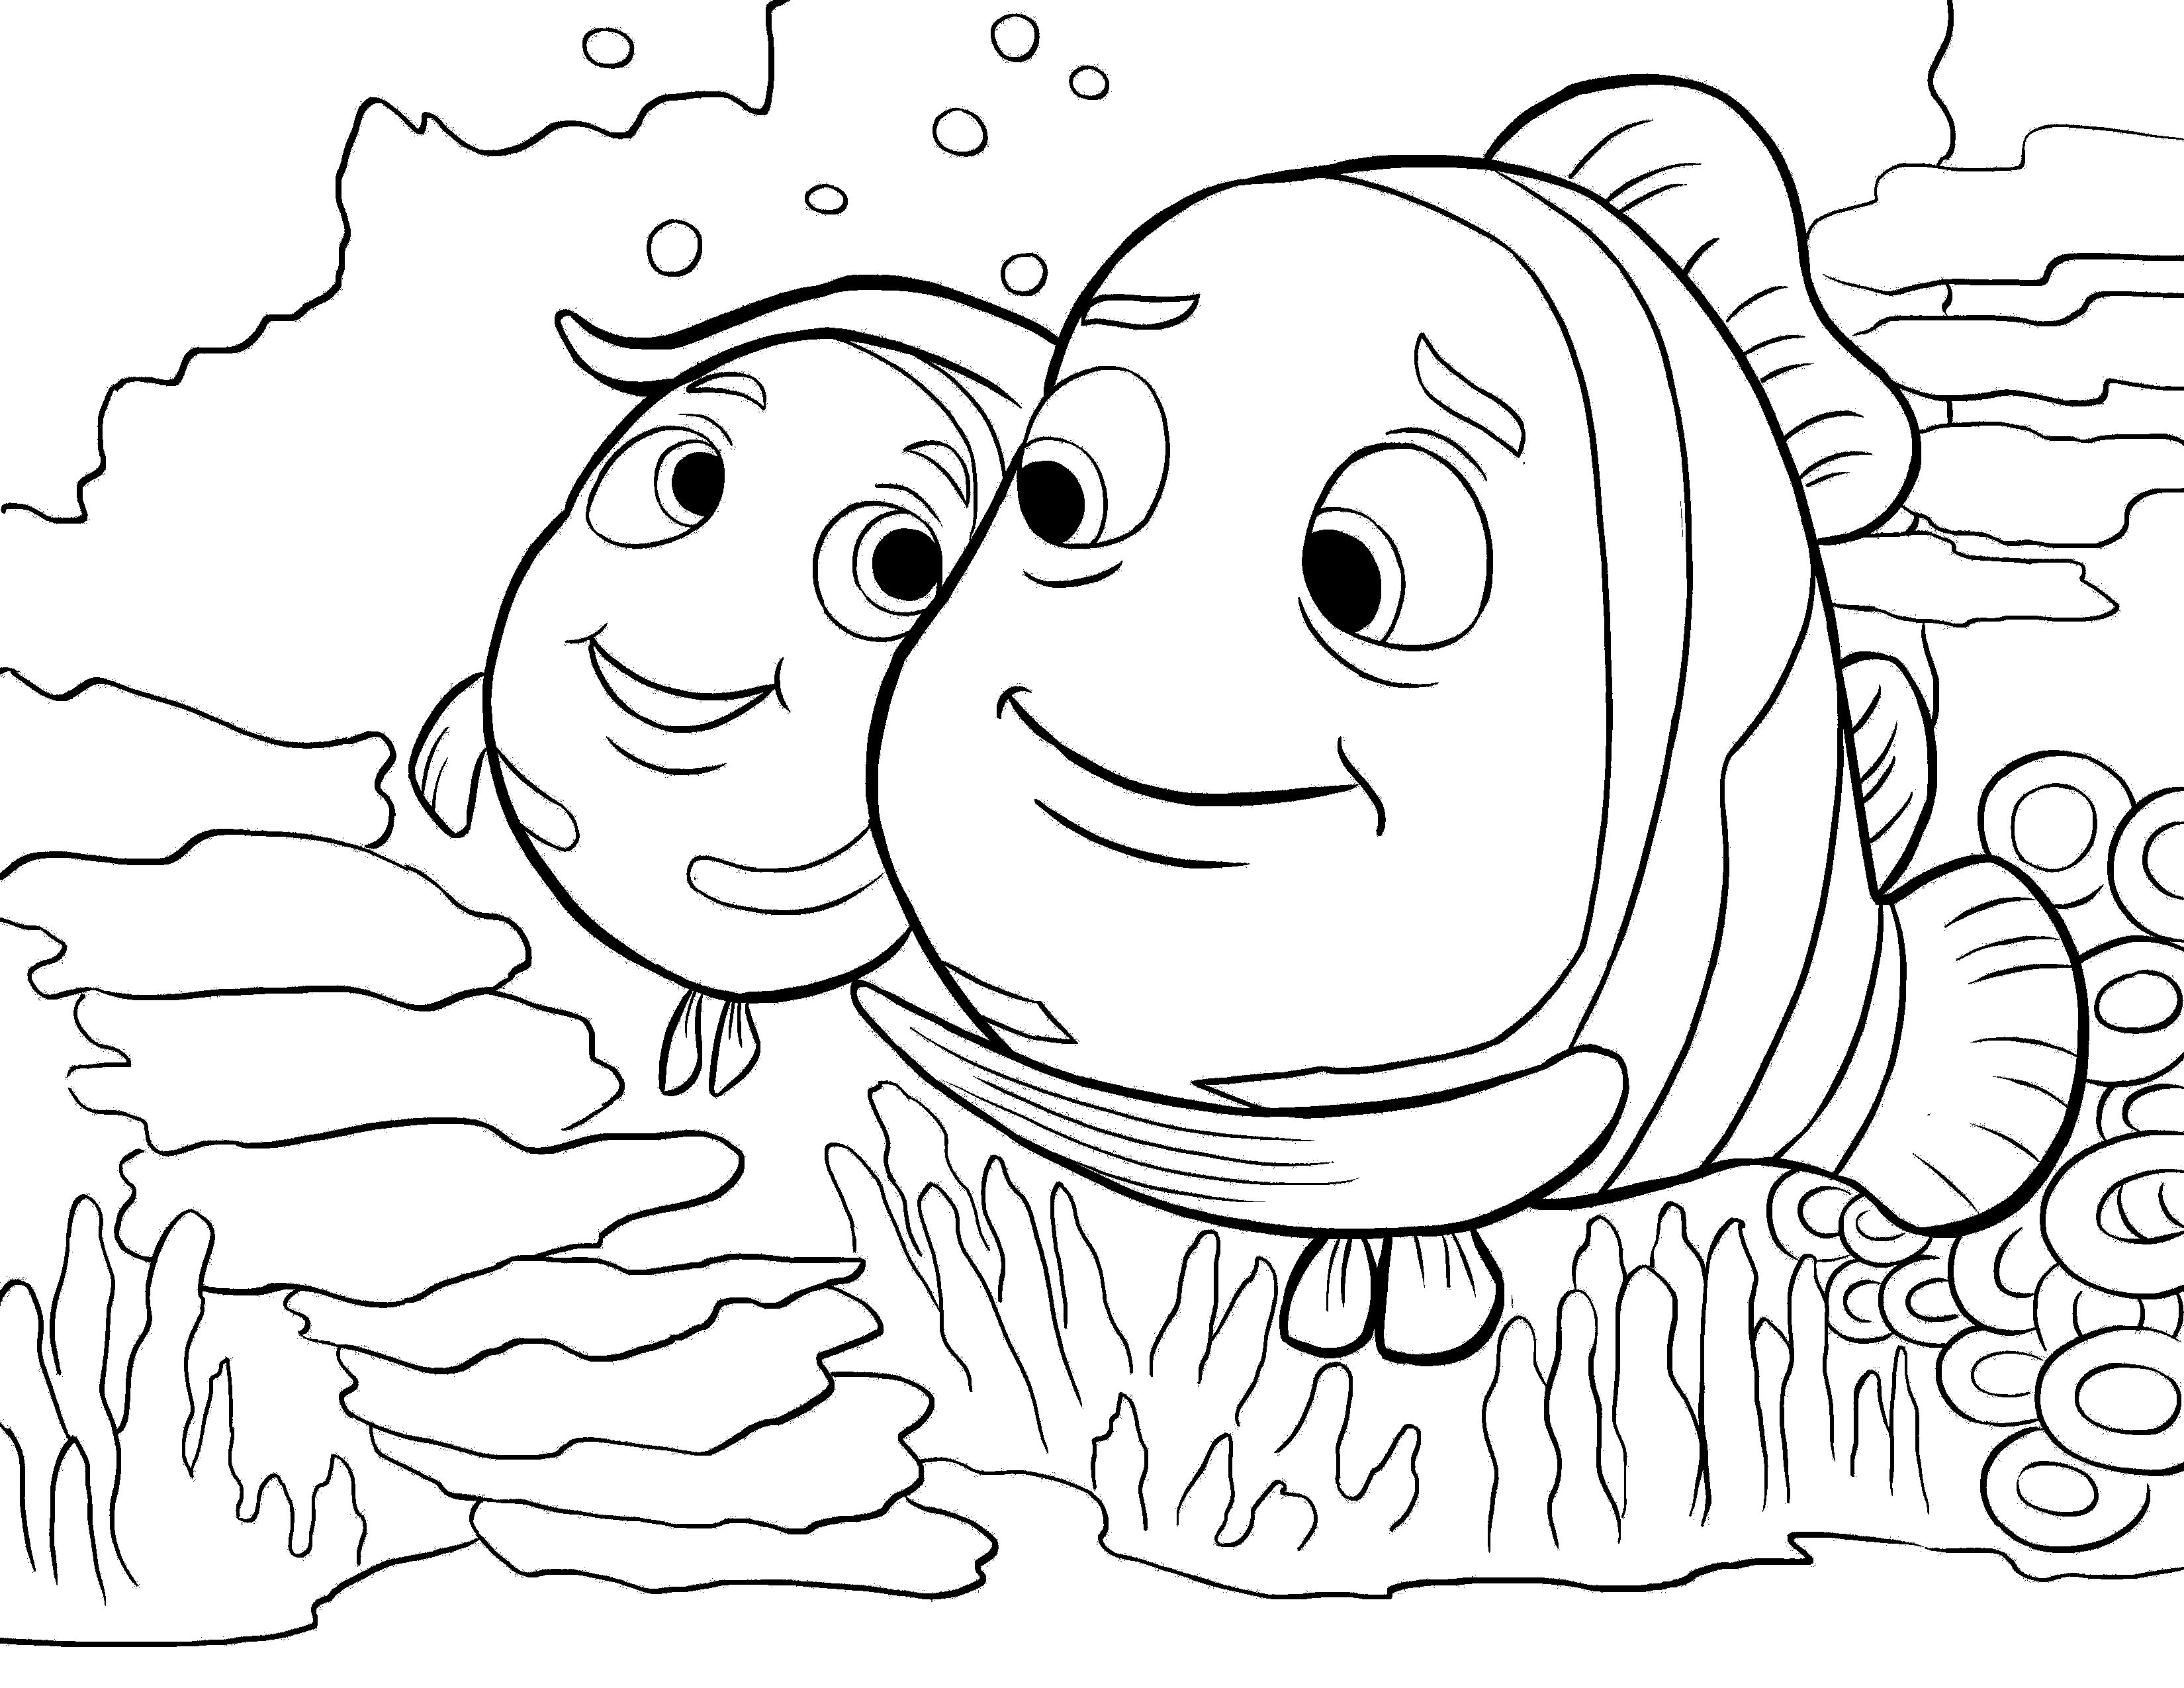 Finding Nemo Feel The Warmth Coloring Pages For Kids #dek